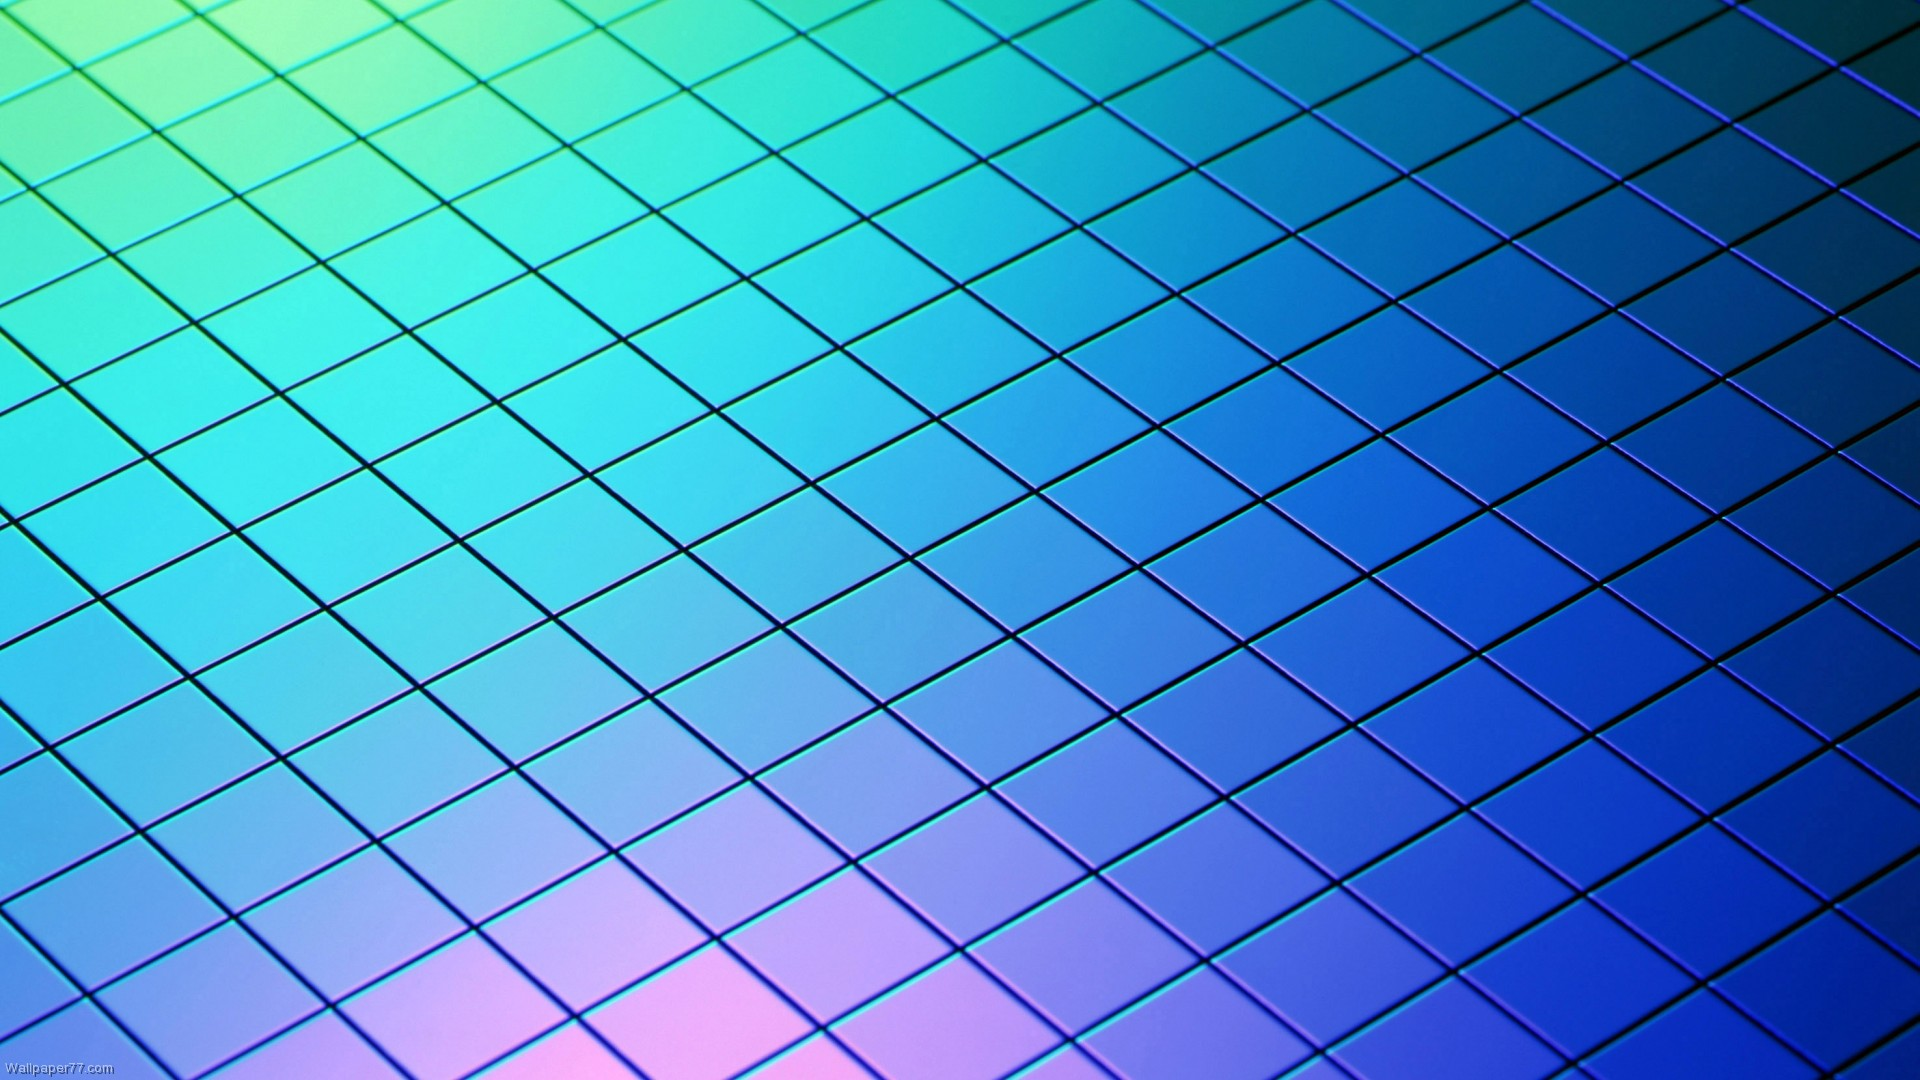 Pattern Blue Squares background patterns pattern wallpapers 1920x1080 1920x1080